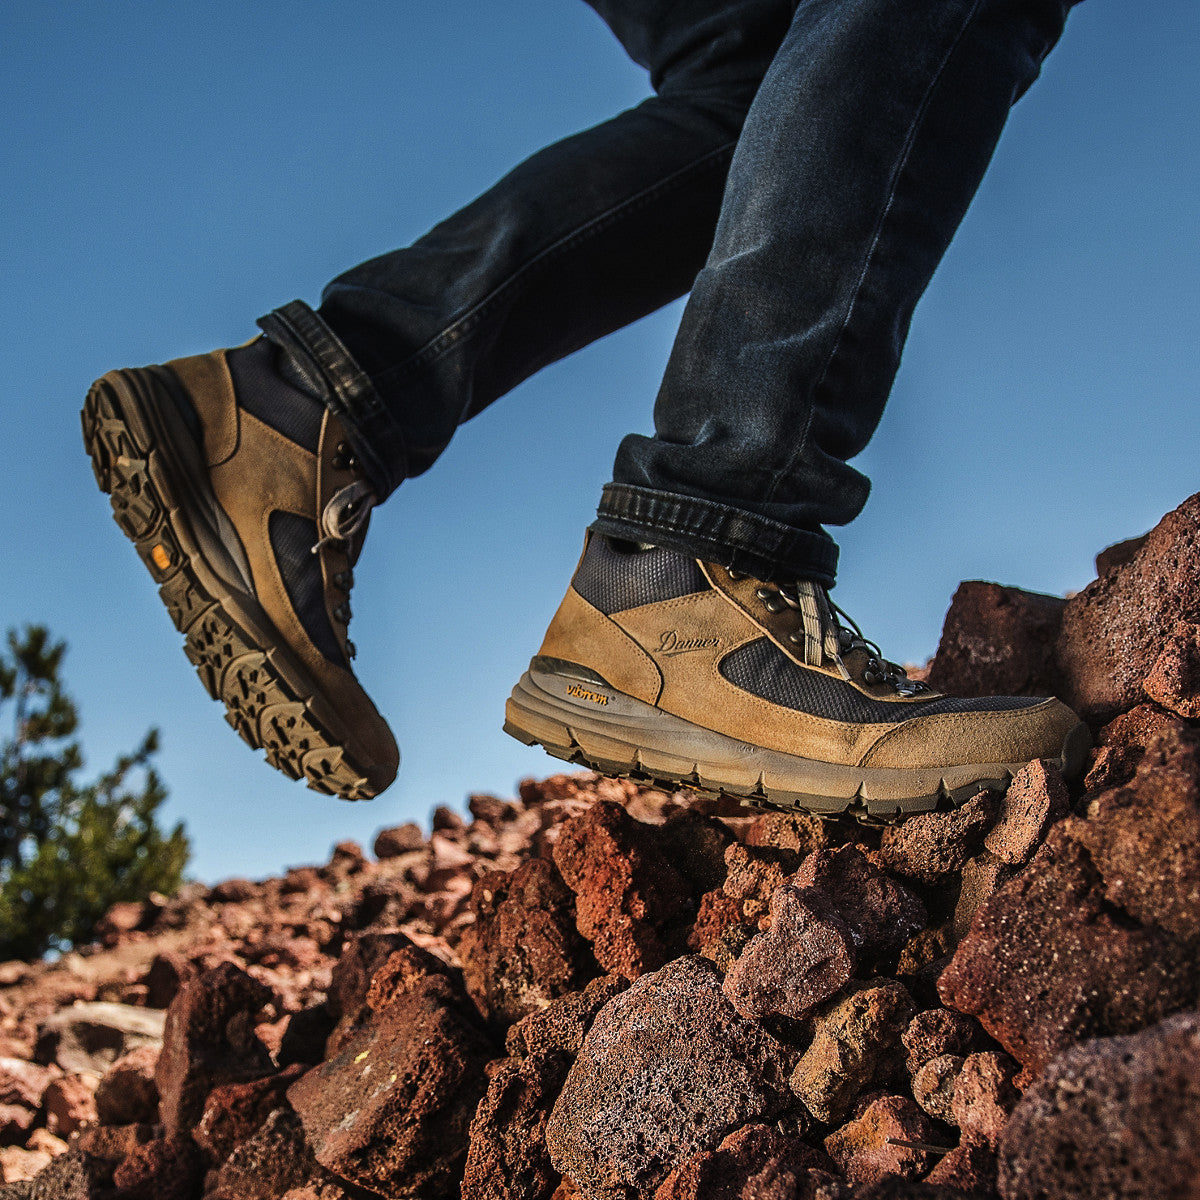 Danner South Rim 600 Shoes - 88 Gear